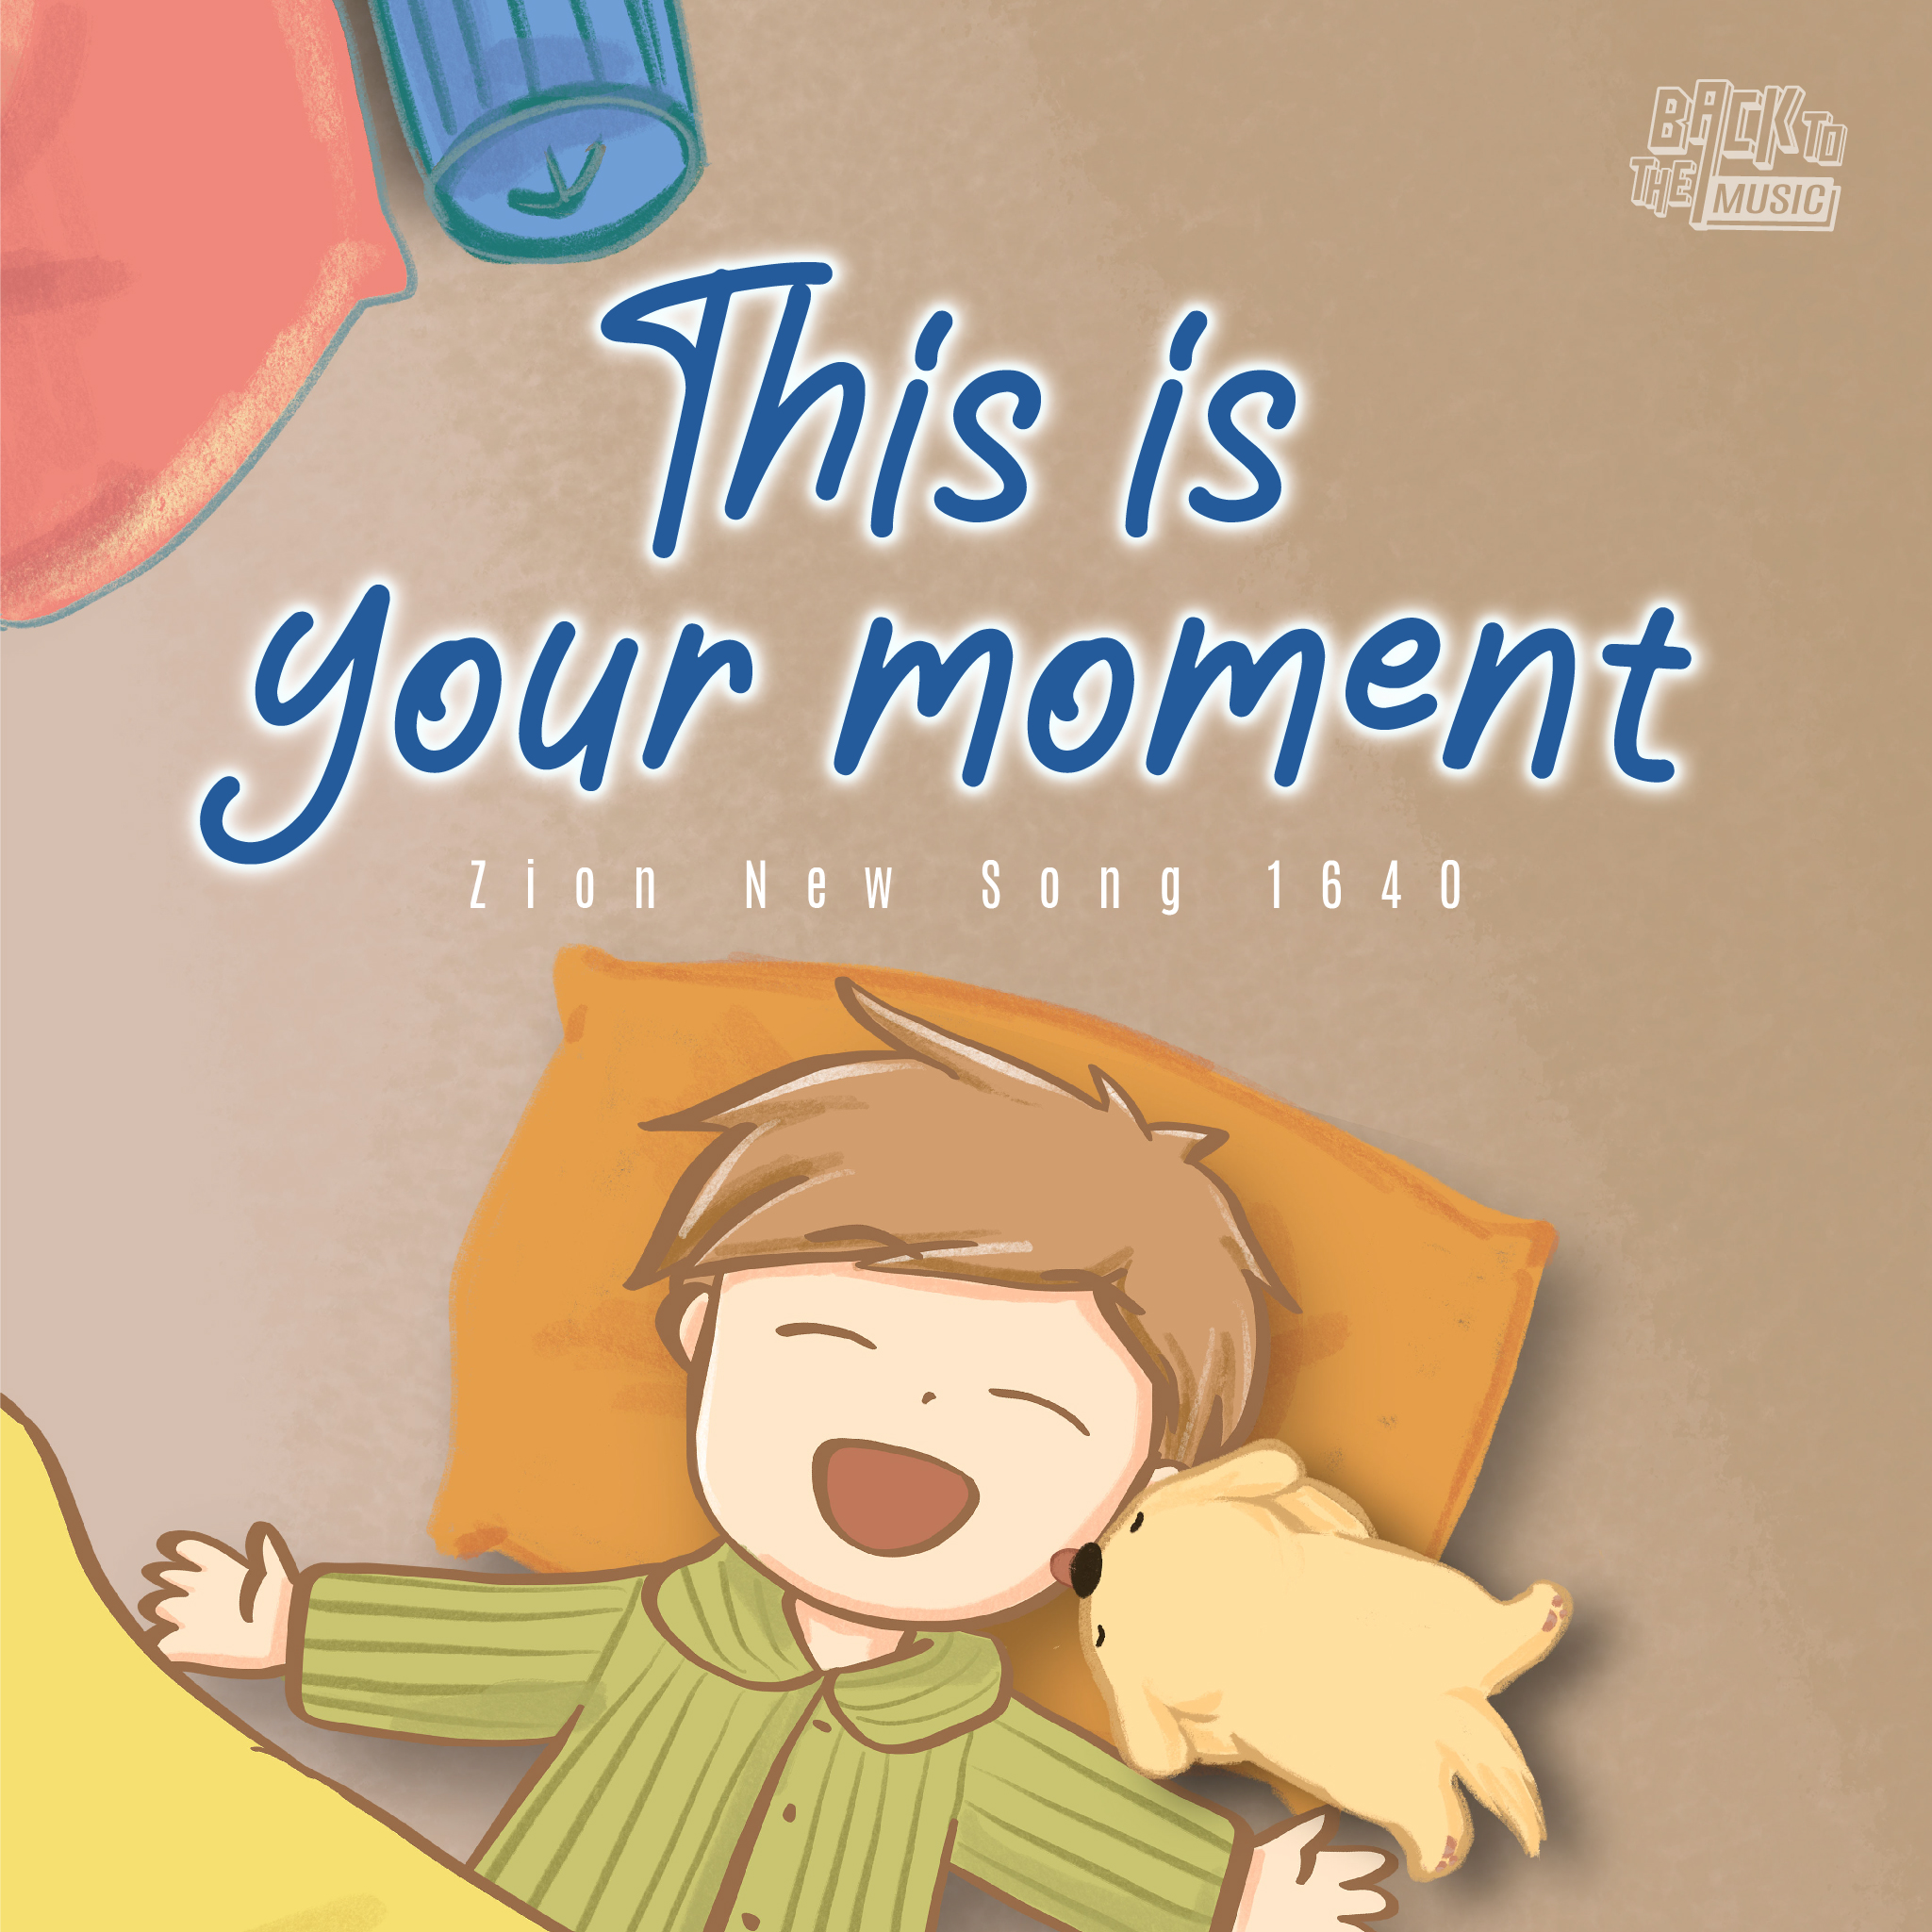 【This is your moment 】| Music | Praise the Lord 2021 | Back To The Music